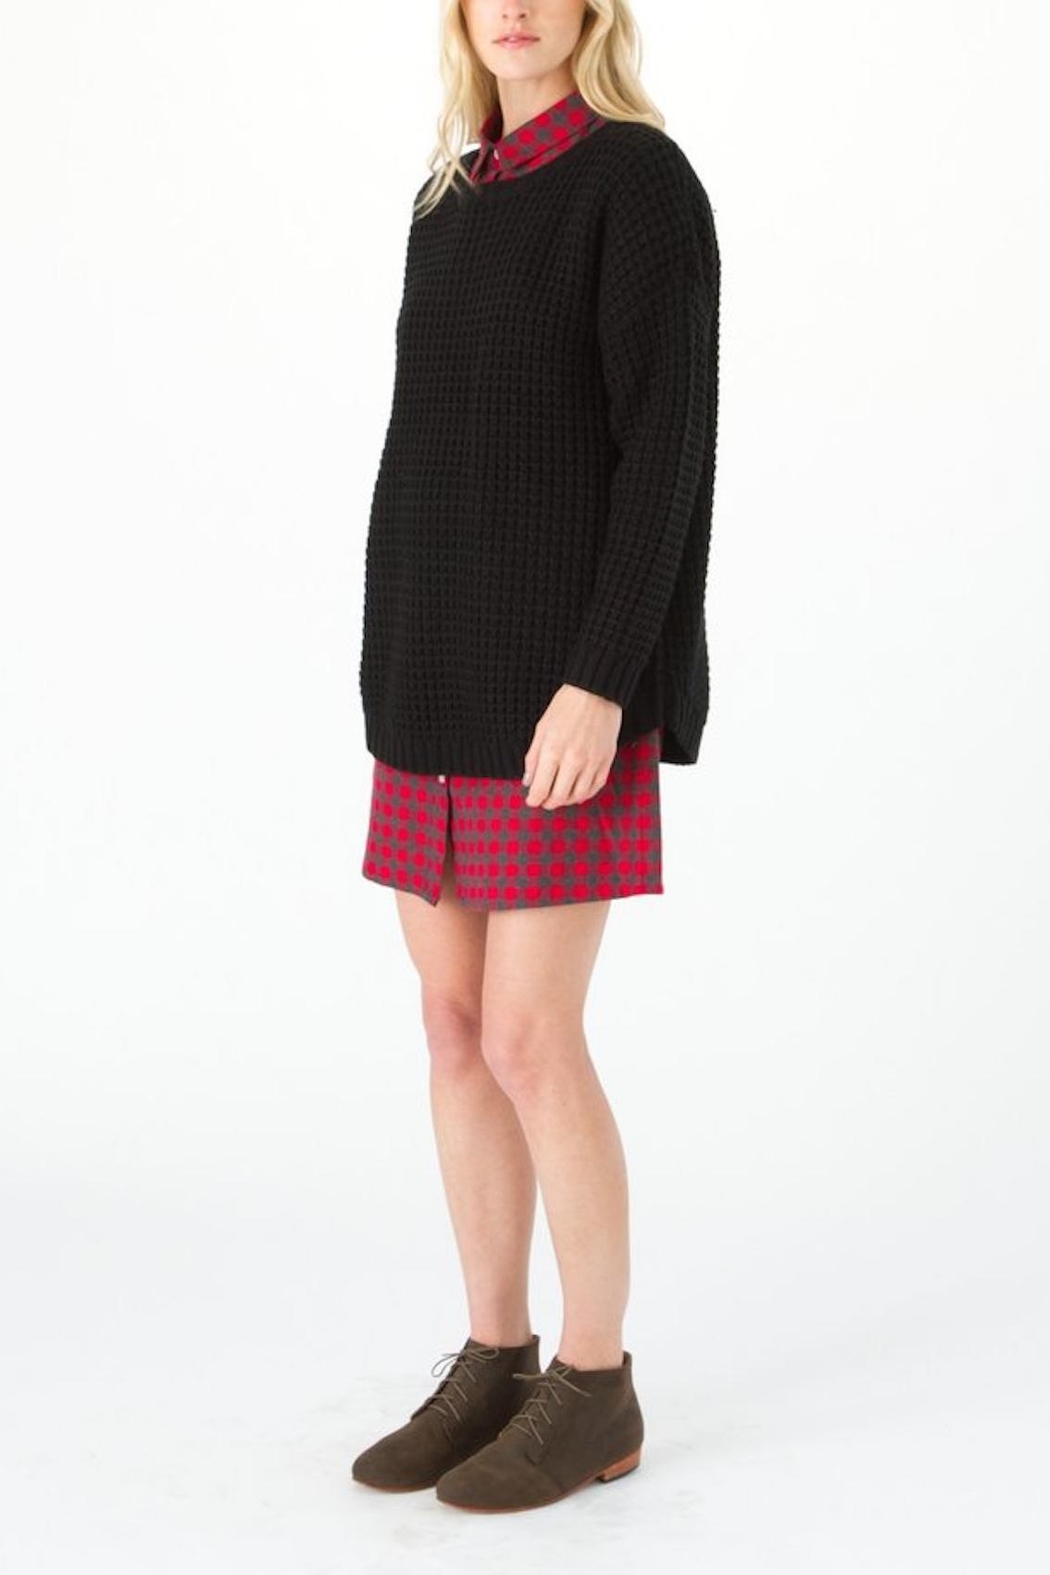 Knot Sisters Black Purba Sweater - Front Full Image